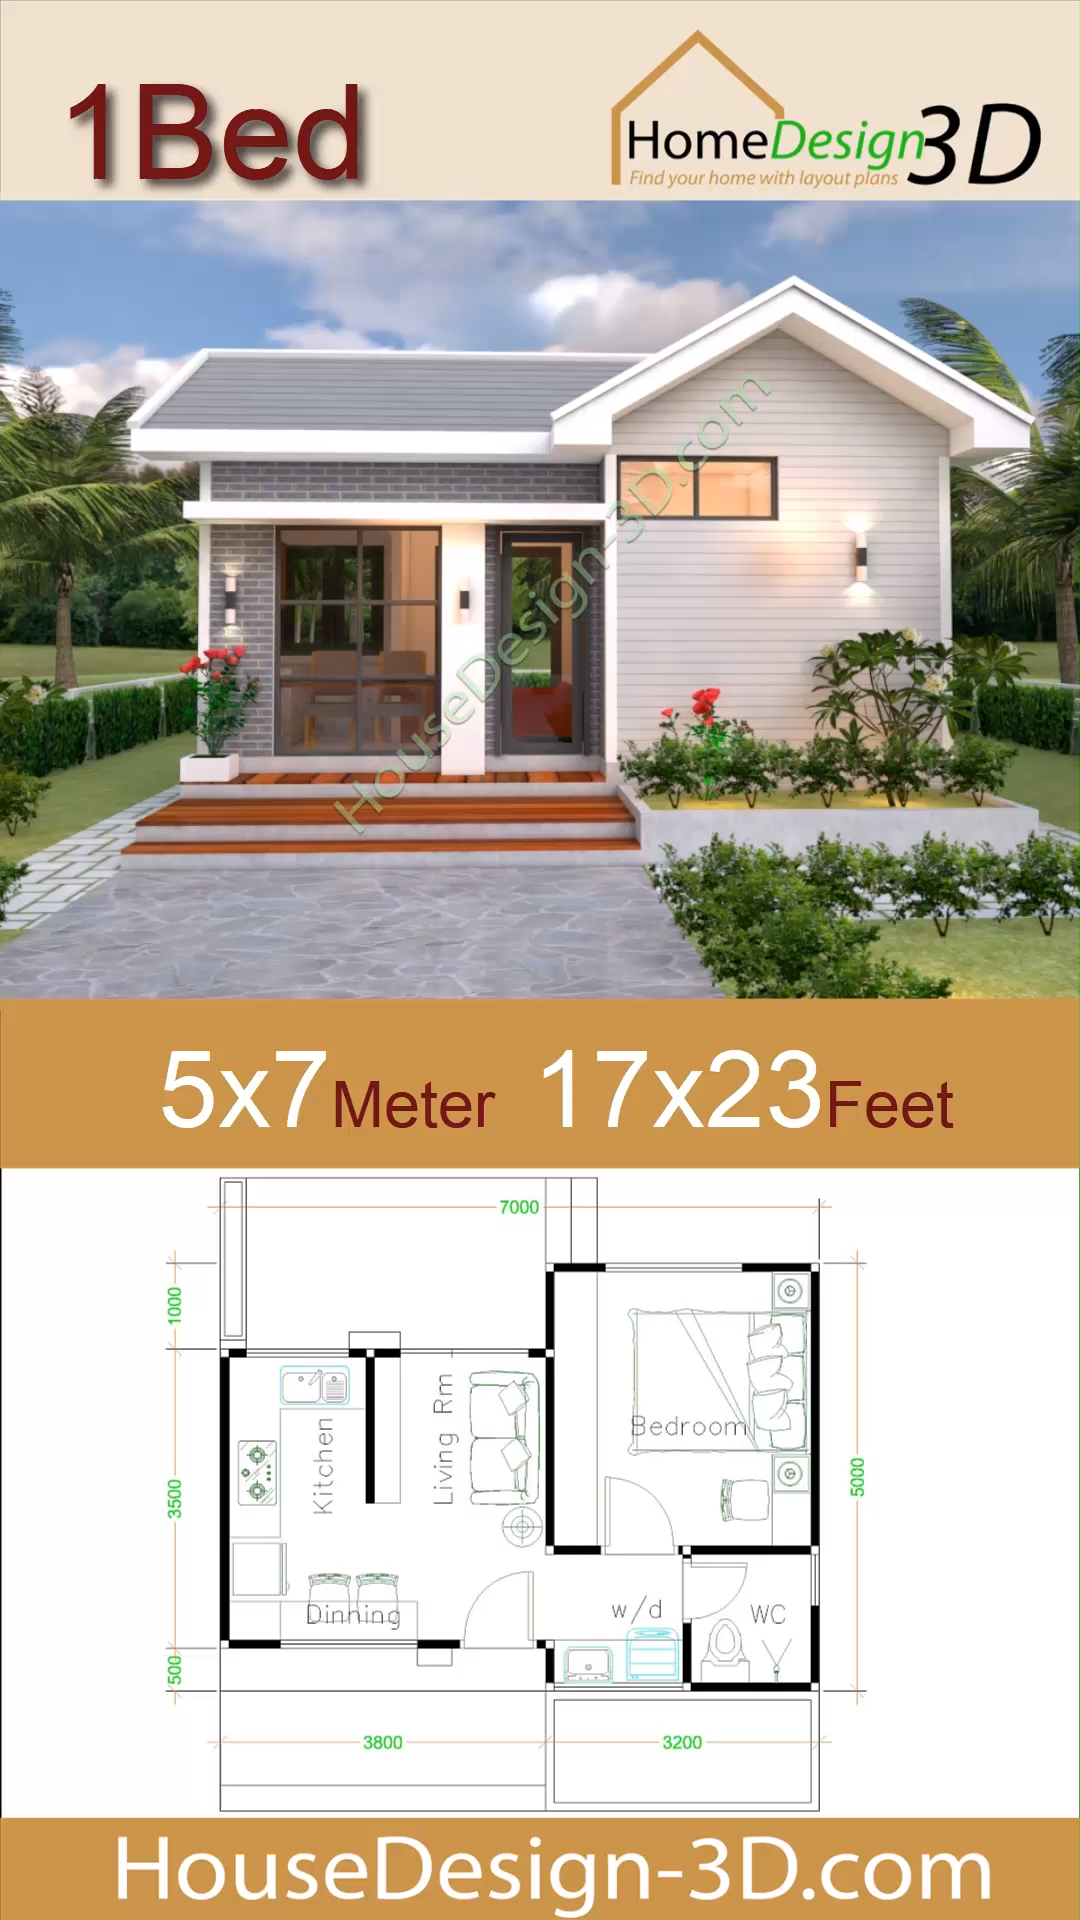 Small House Design Plans 5x7 with One Bedroom Gable Roof